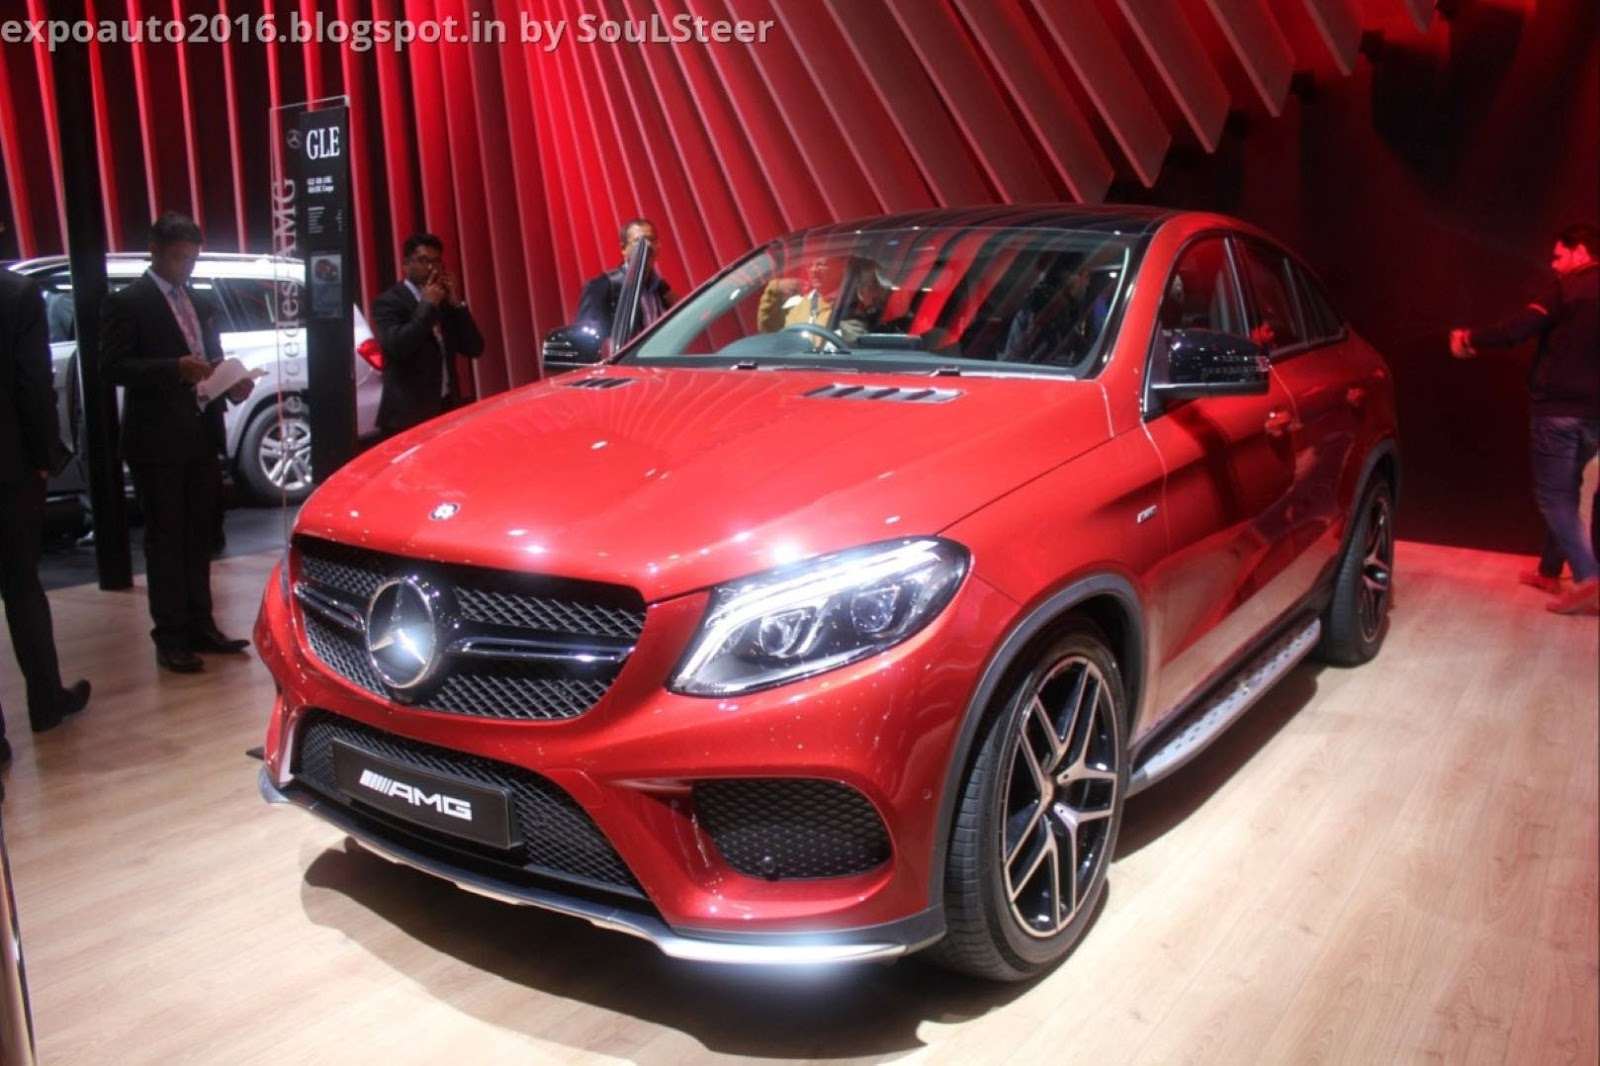 Auto expo 2016 by soulsteer mercedes benz gl 350 cdi for Mercedes benz gl 350